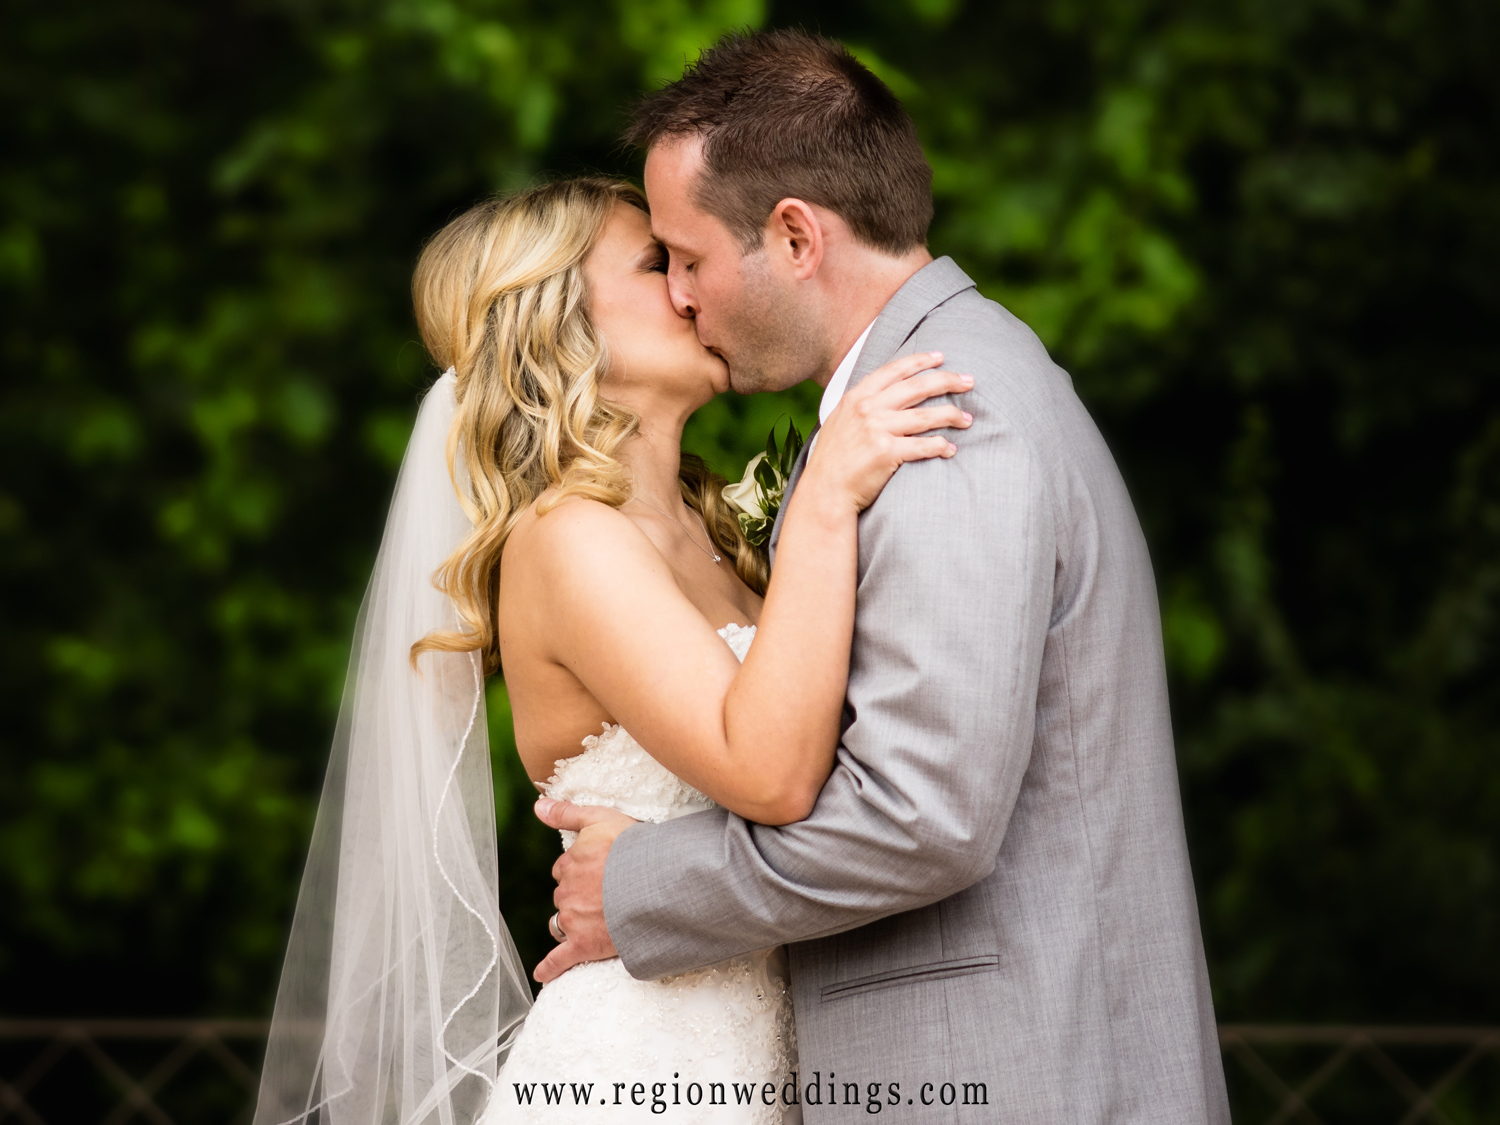 The bride and groom have their first kiss underneather the gazebo at Halls of St. George.